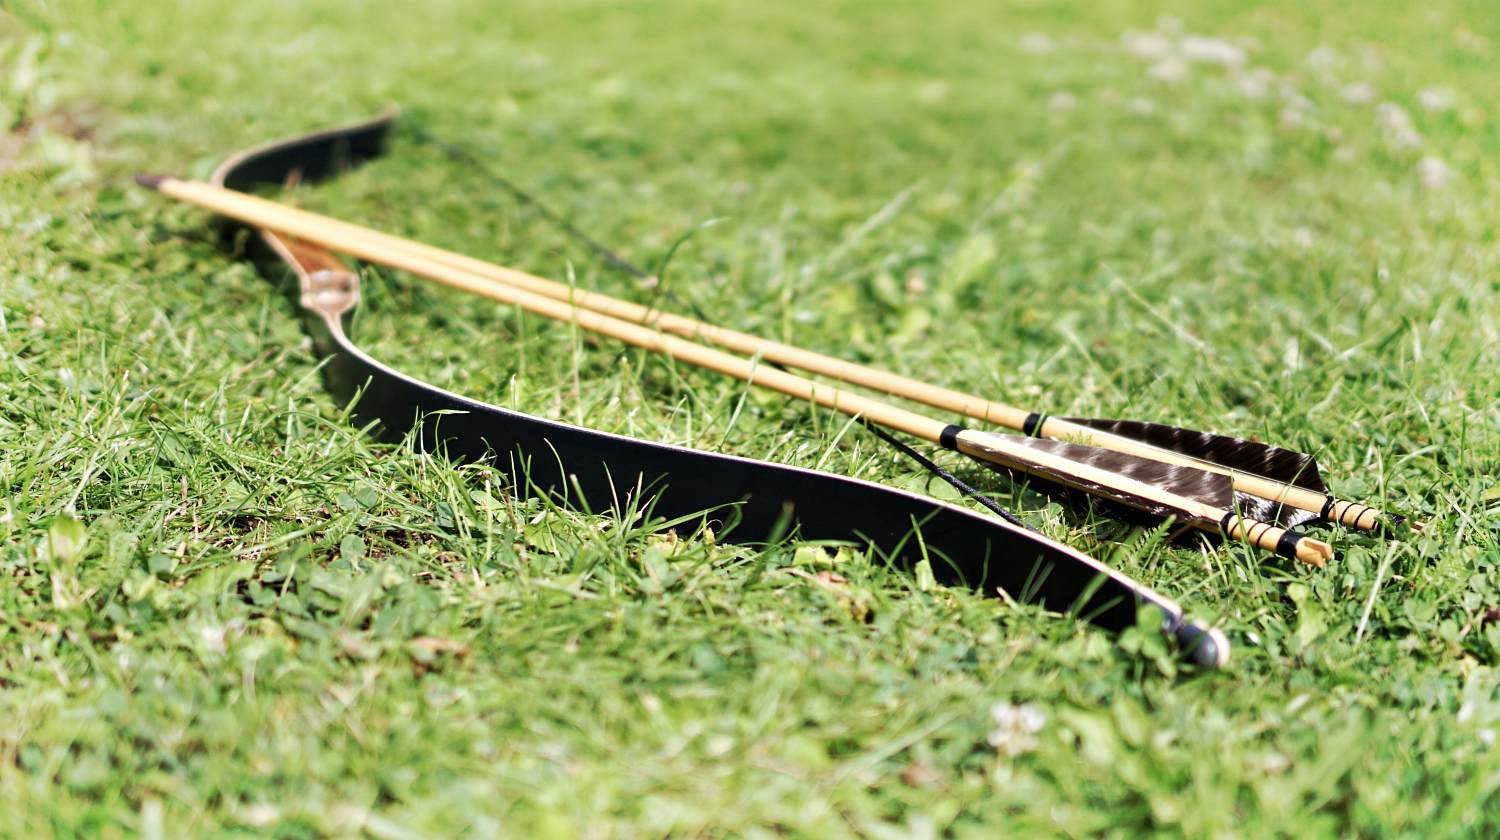 Featured | Black and brown bow on grass field during daytime | How To Build A DIY Longbow [Video]